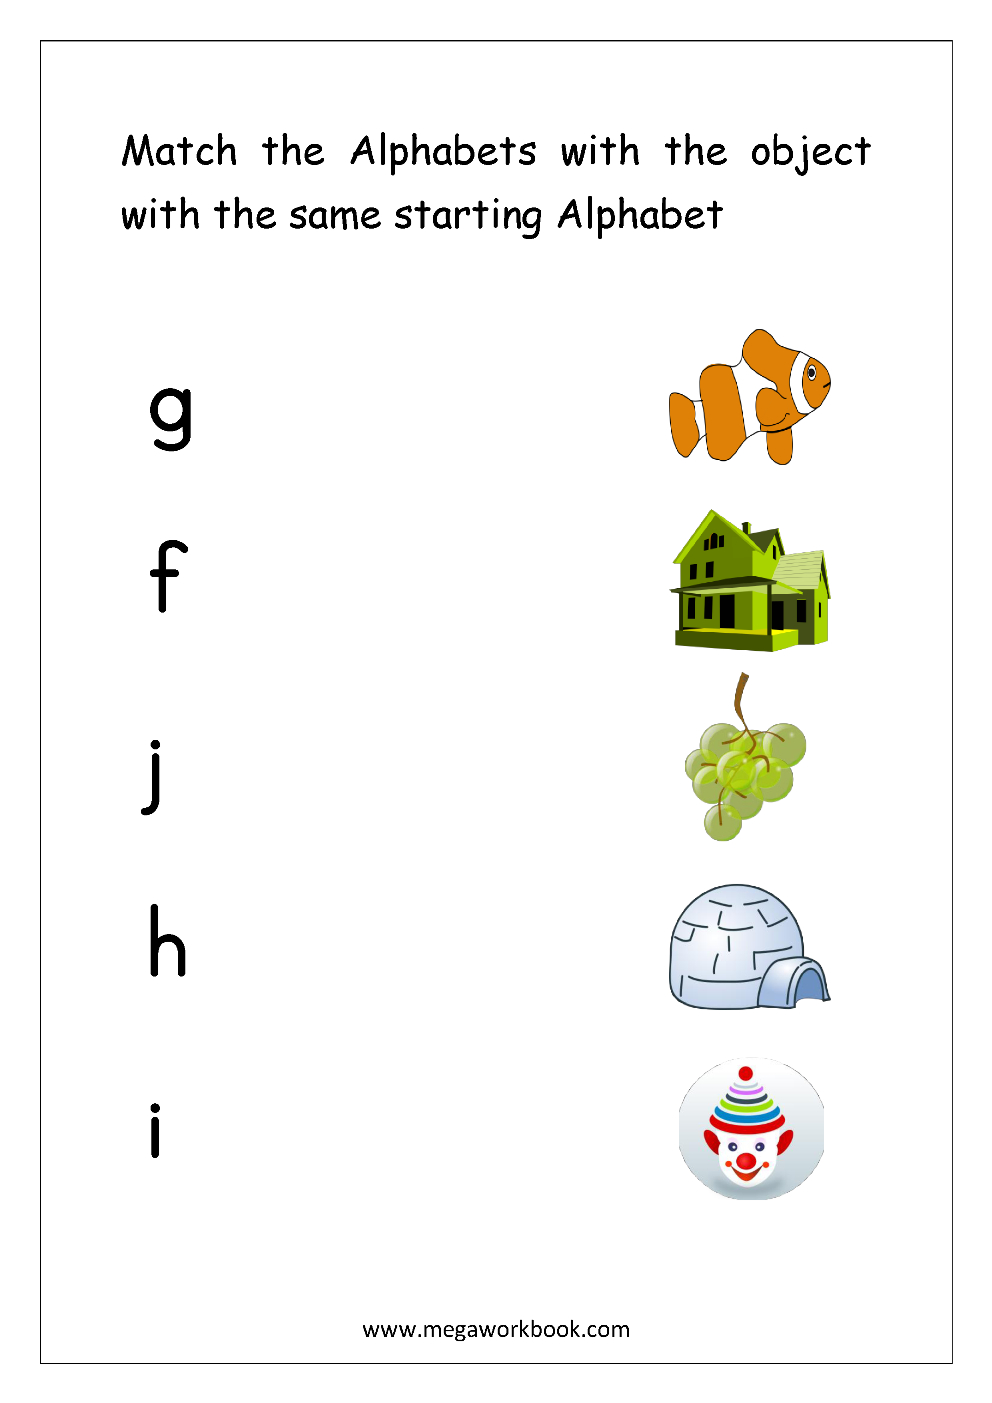 Alphabet Matching Worksheets - Match Object With The regarding Alphabet Match Up Worksheets